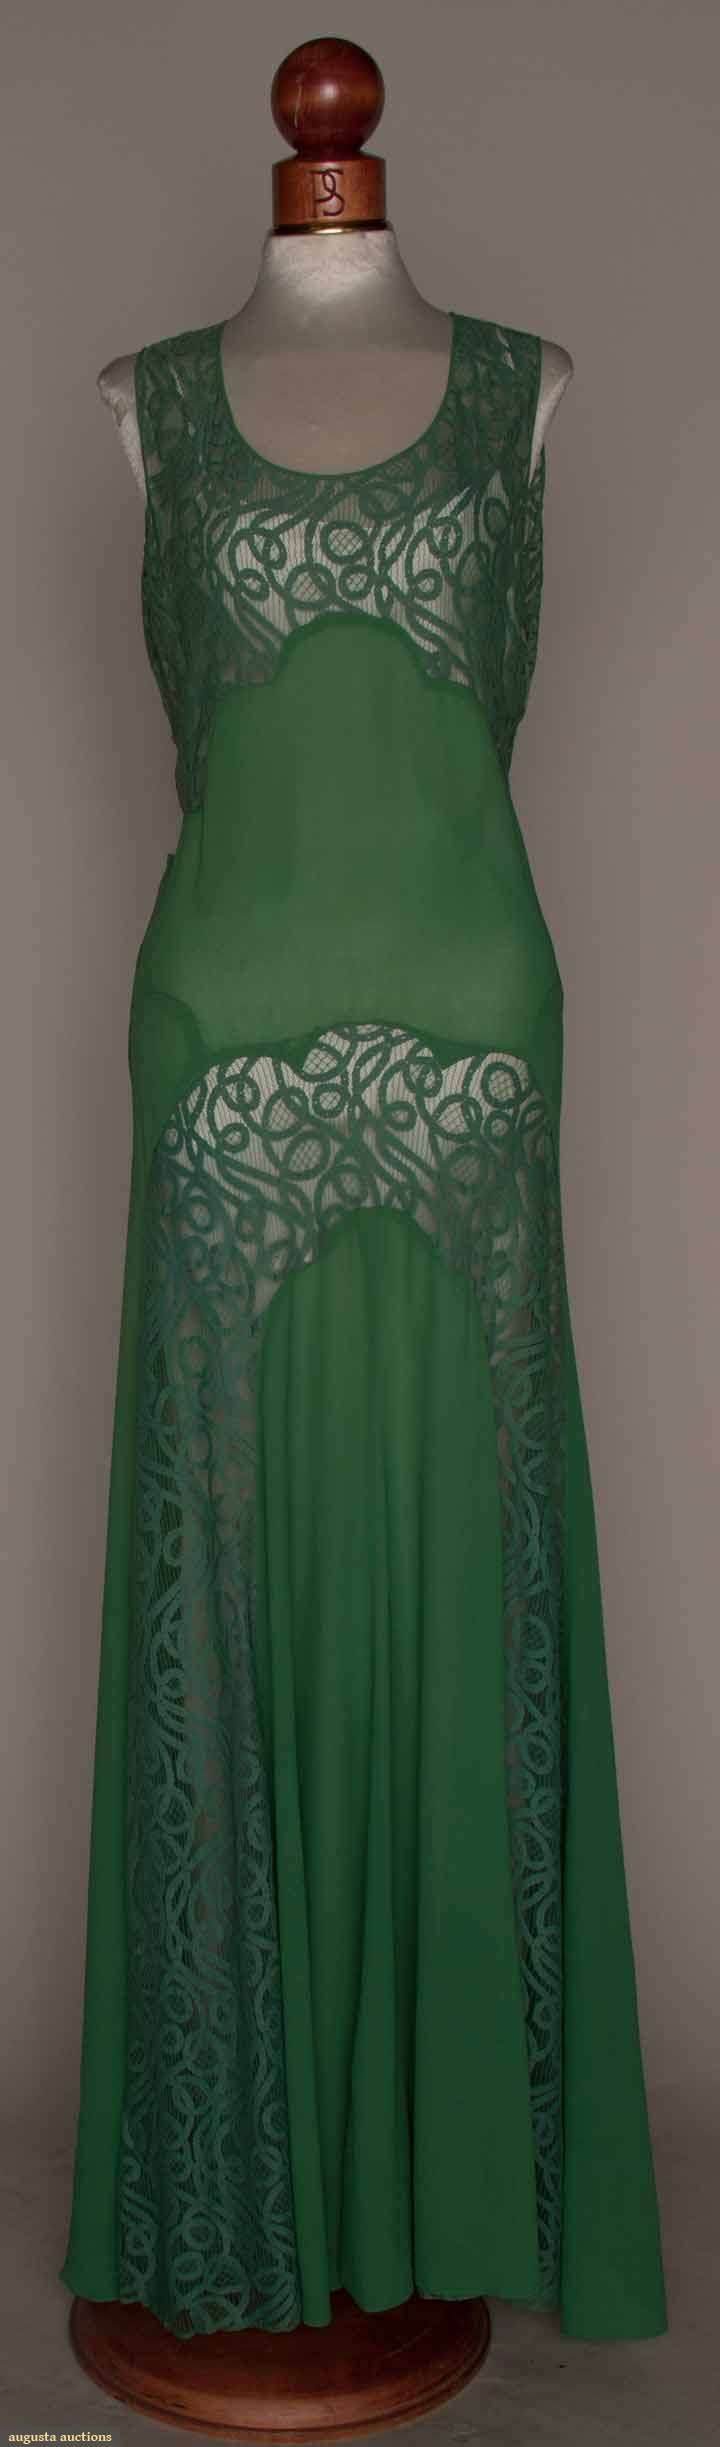 GREEN SILK & LACE GOWN, MID 1930s Silk crepe, bias piecing, sleeveless, CB & F panels of green tape lace, attached crepe back belt & halter | Augusta Auctions